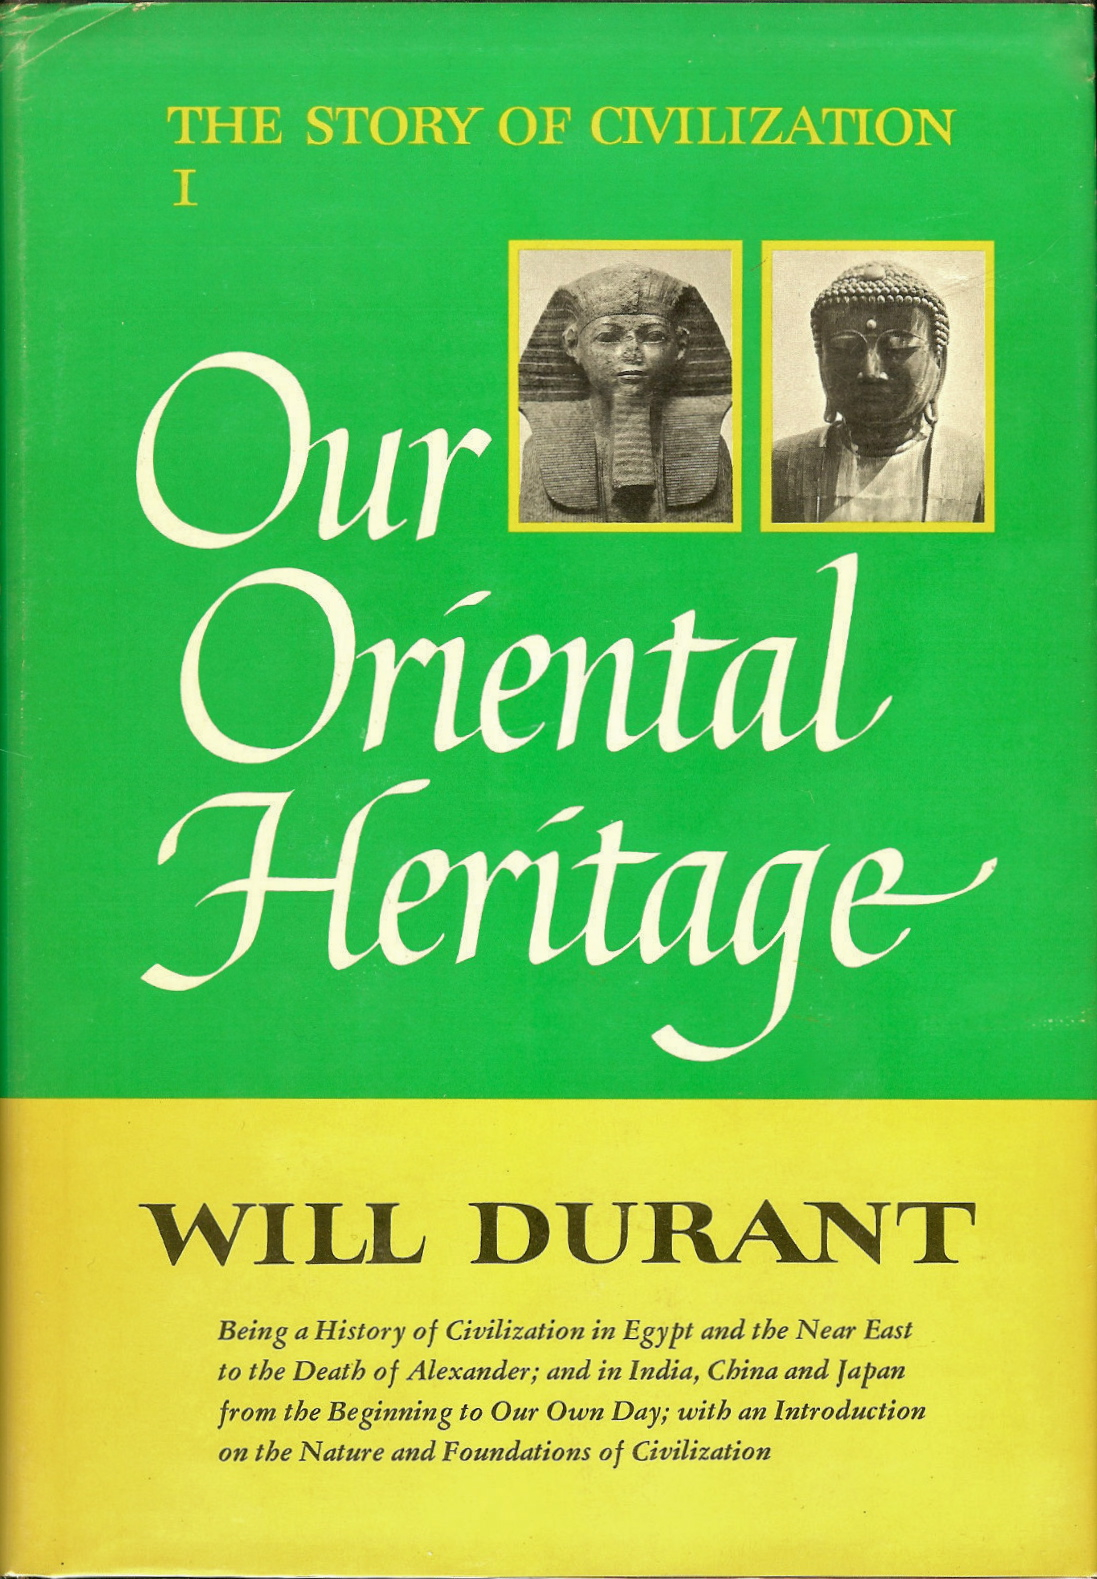 the story of civilization by will and ariel durant pdf